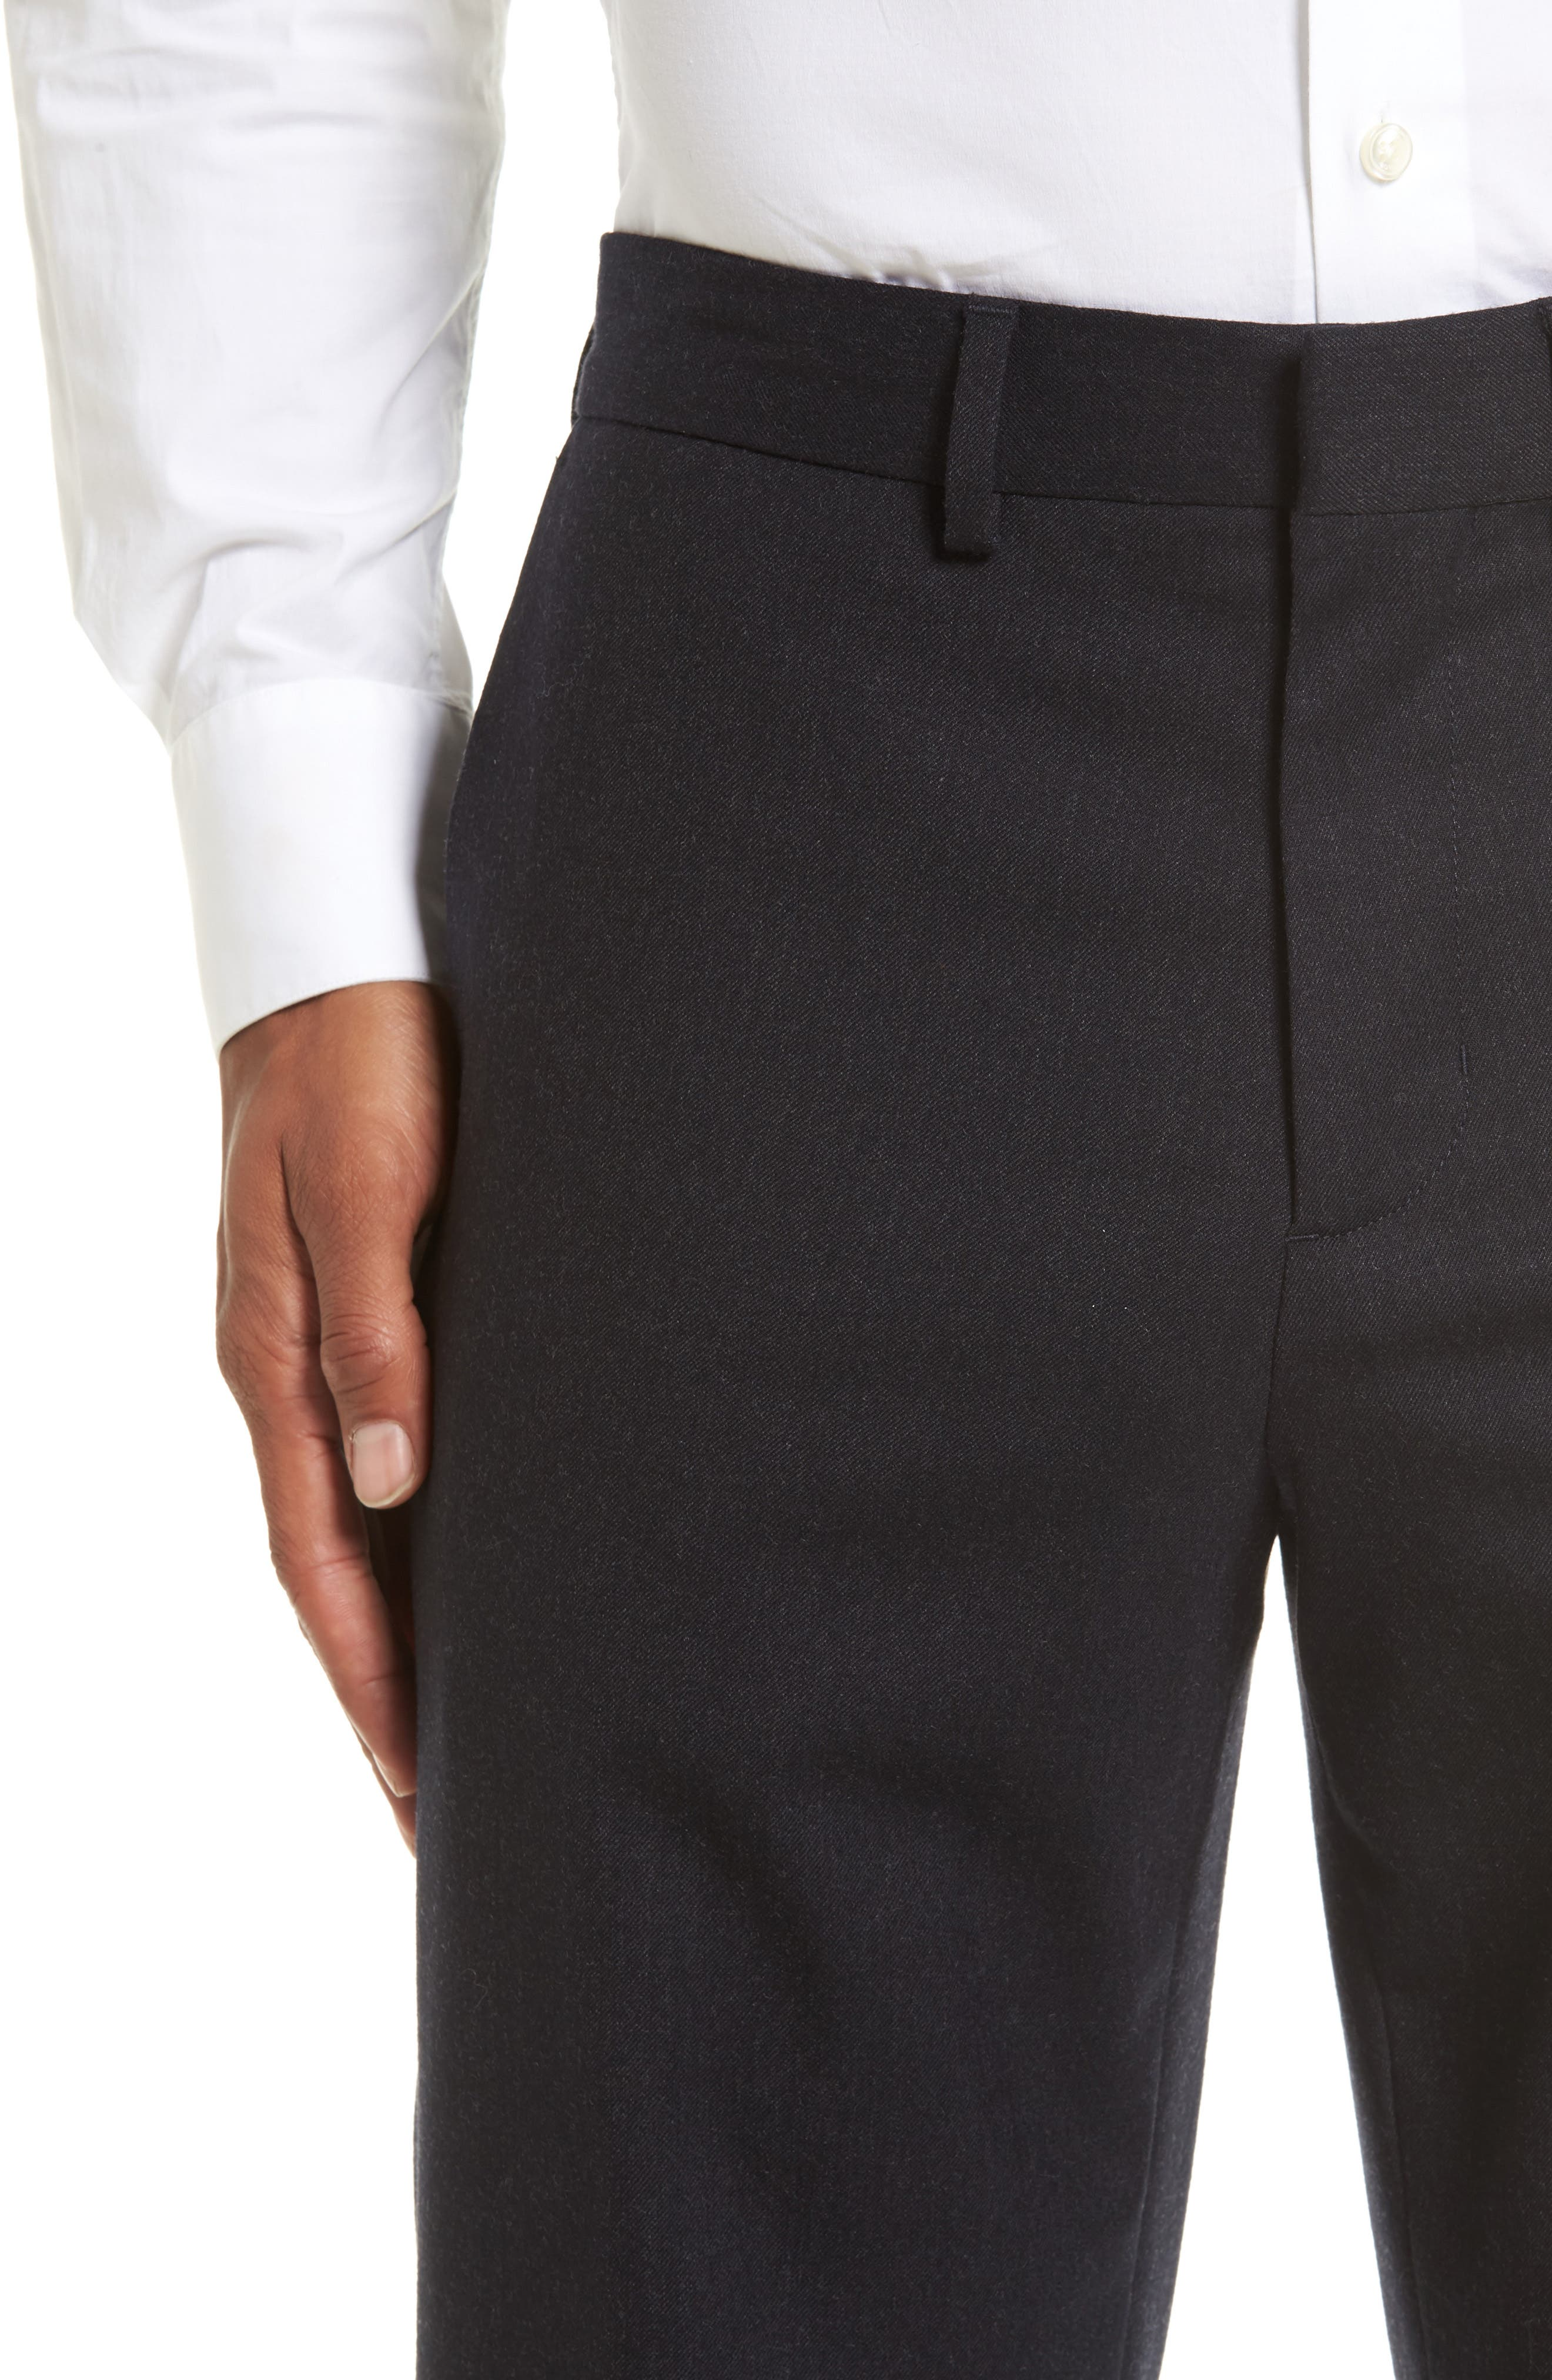 Regular Fit Wool Trousers,                             Alternate thumbnail 5, color,                             021